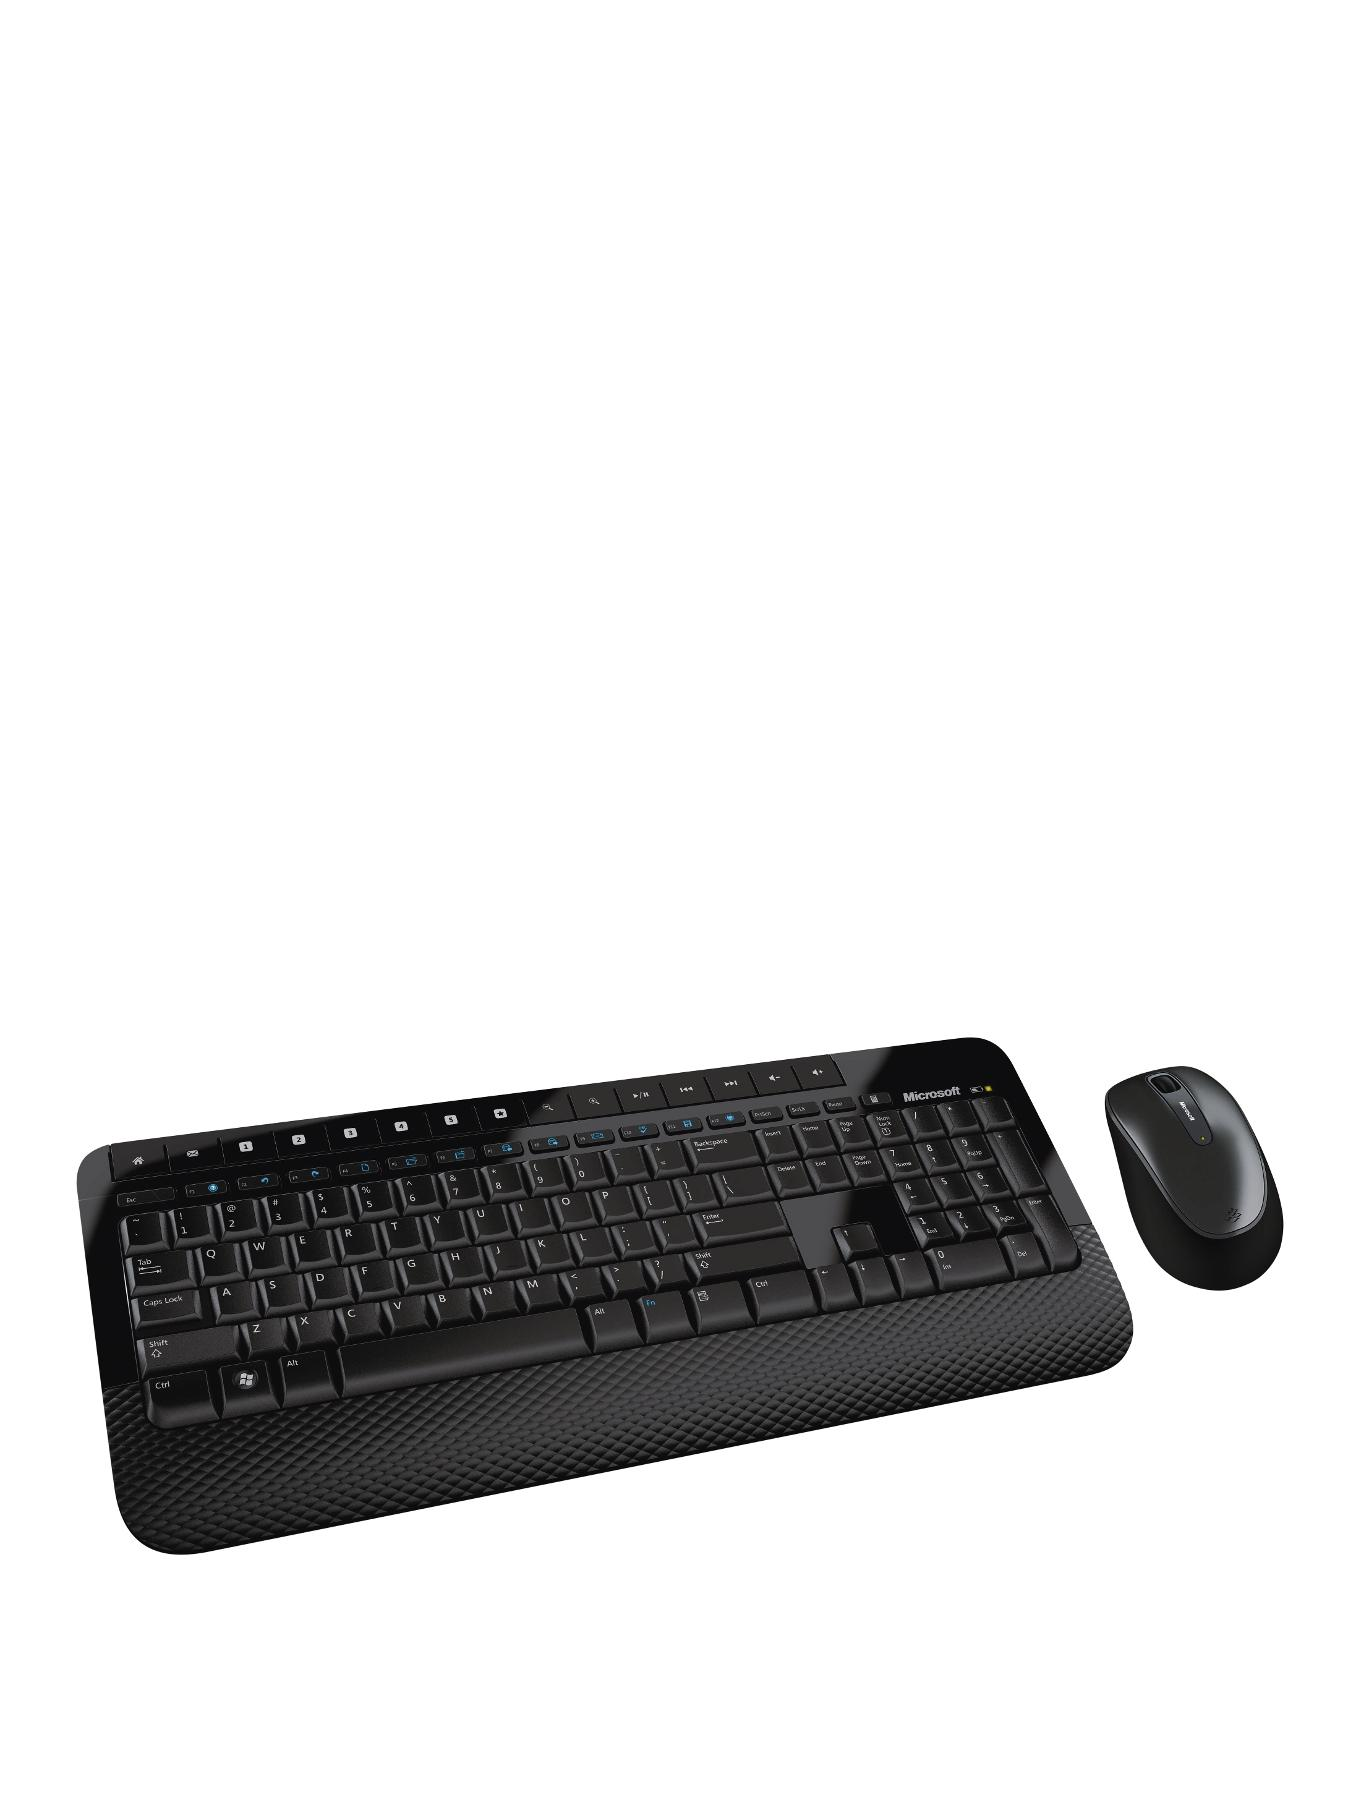 Microsoft Wireless Desktop 2000 Keyboard